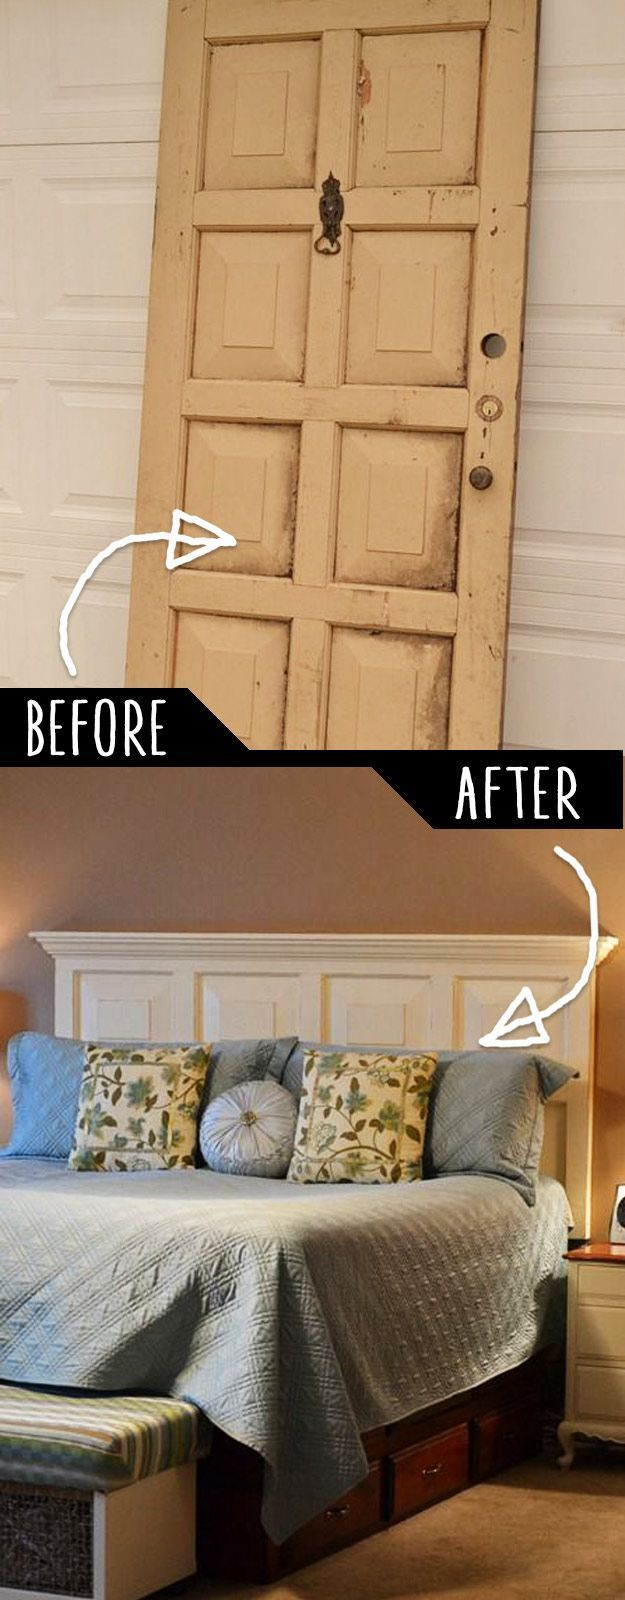 Ideas For Headboards Best 25 Refurbished Headboard Ideas On Pinterest  Old Benches